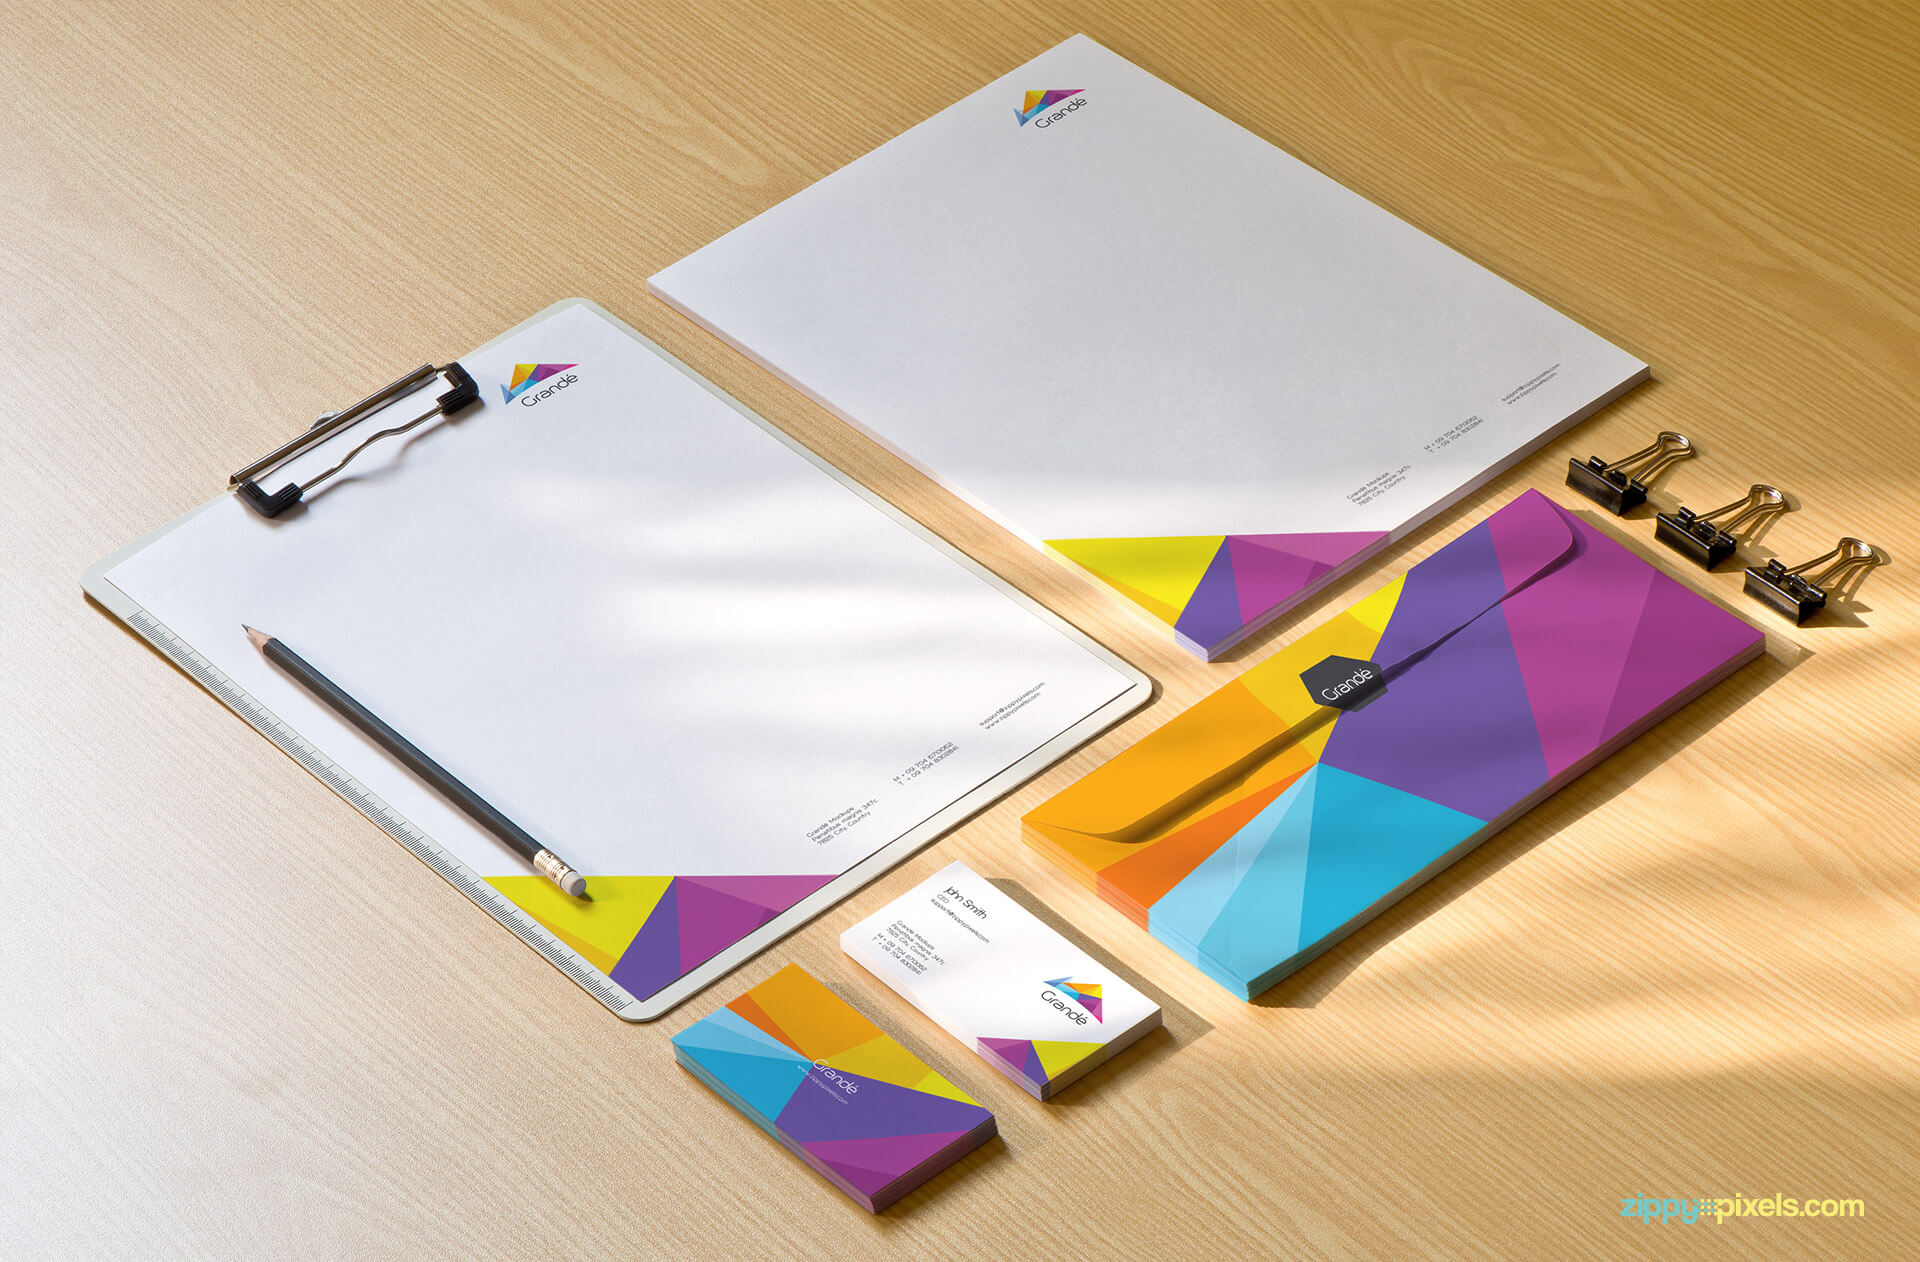 Corporate Identity Mockup of clipboard, letterhead, business cards, pencil and clips.